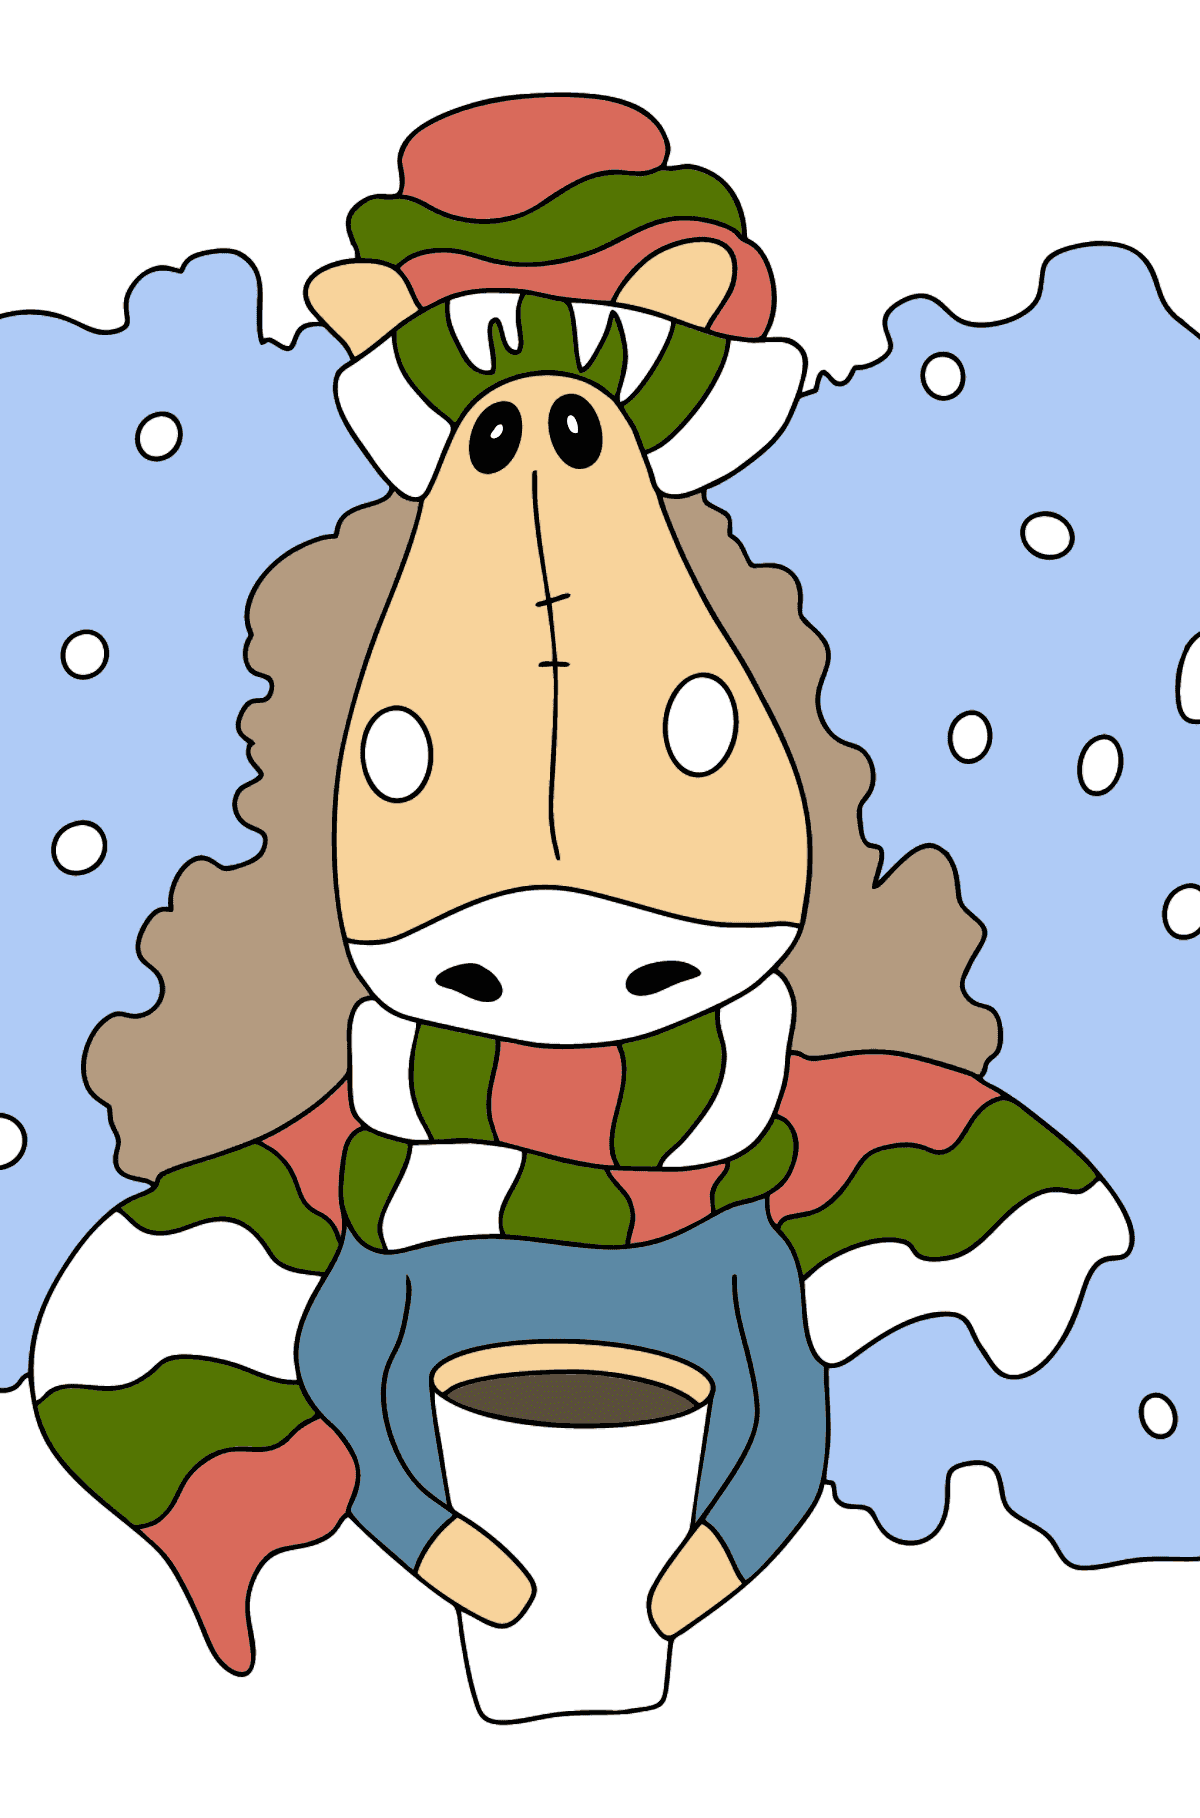 Complex coloring page horse in a scarf - Coloring Pages for Kids